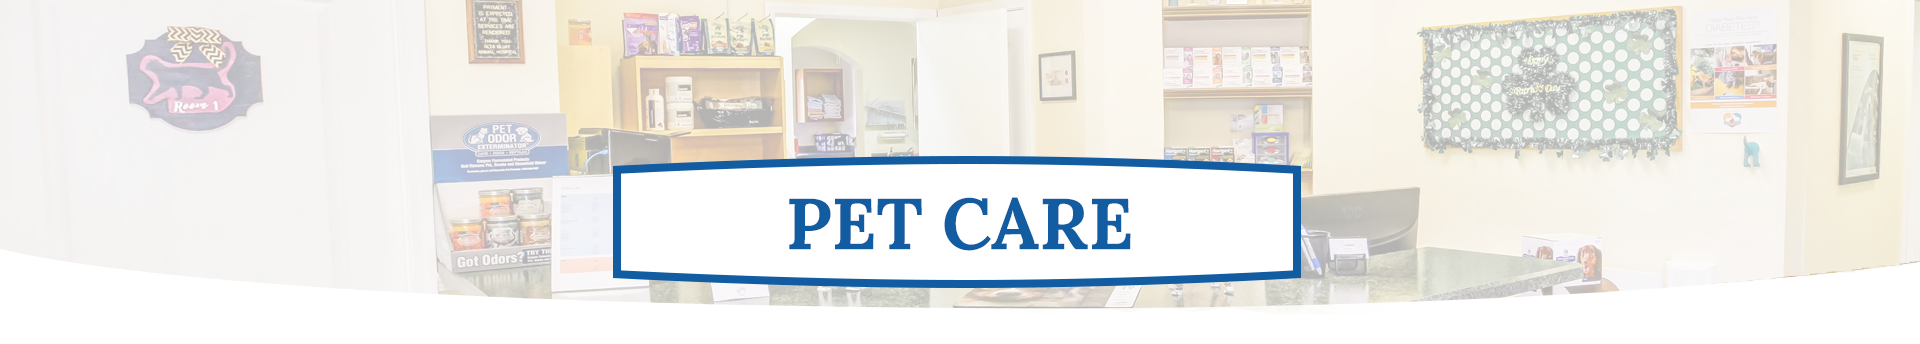 Pet Care | Alta Bluff Animal Hospital Jacksonville FL